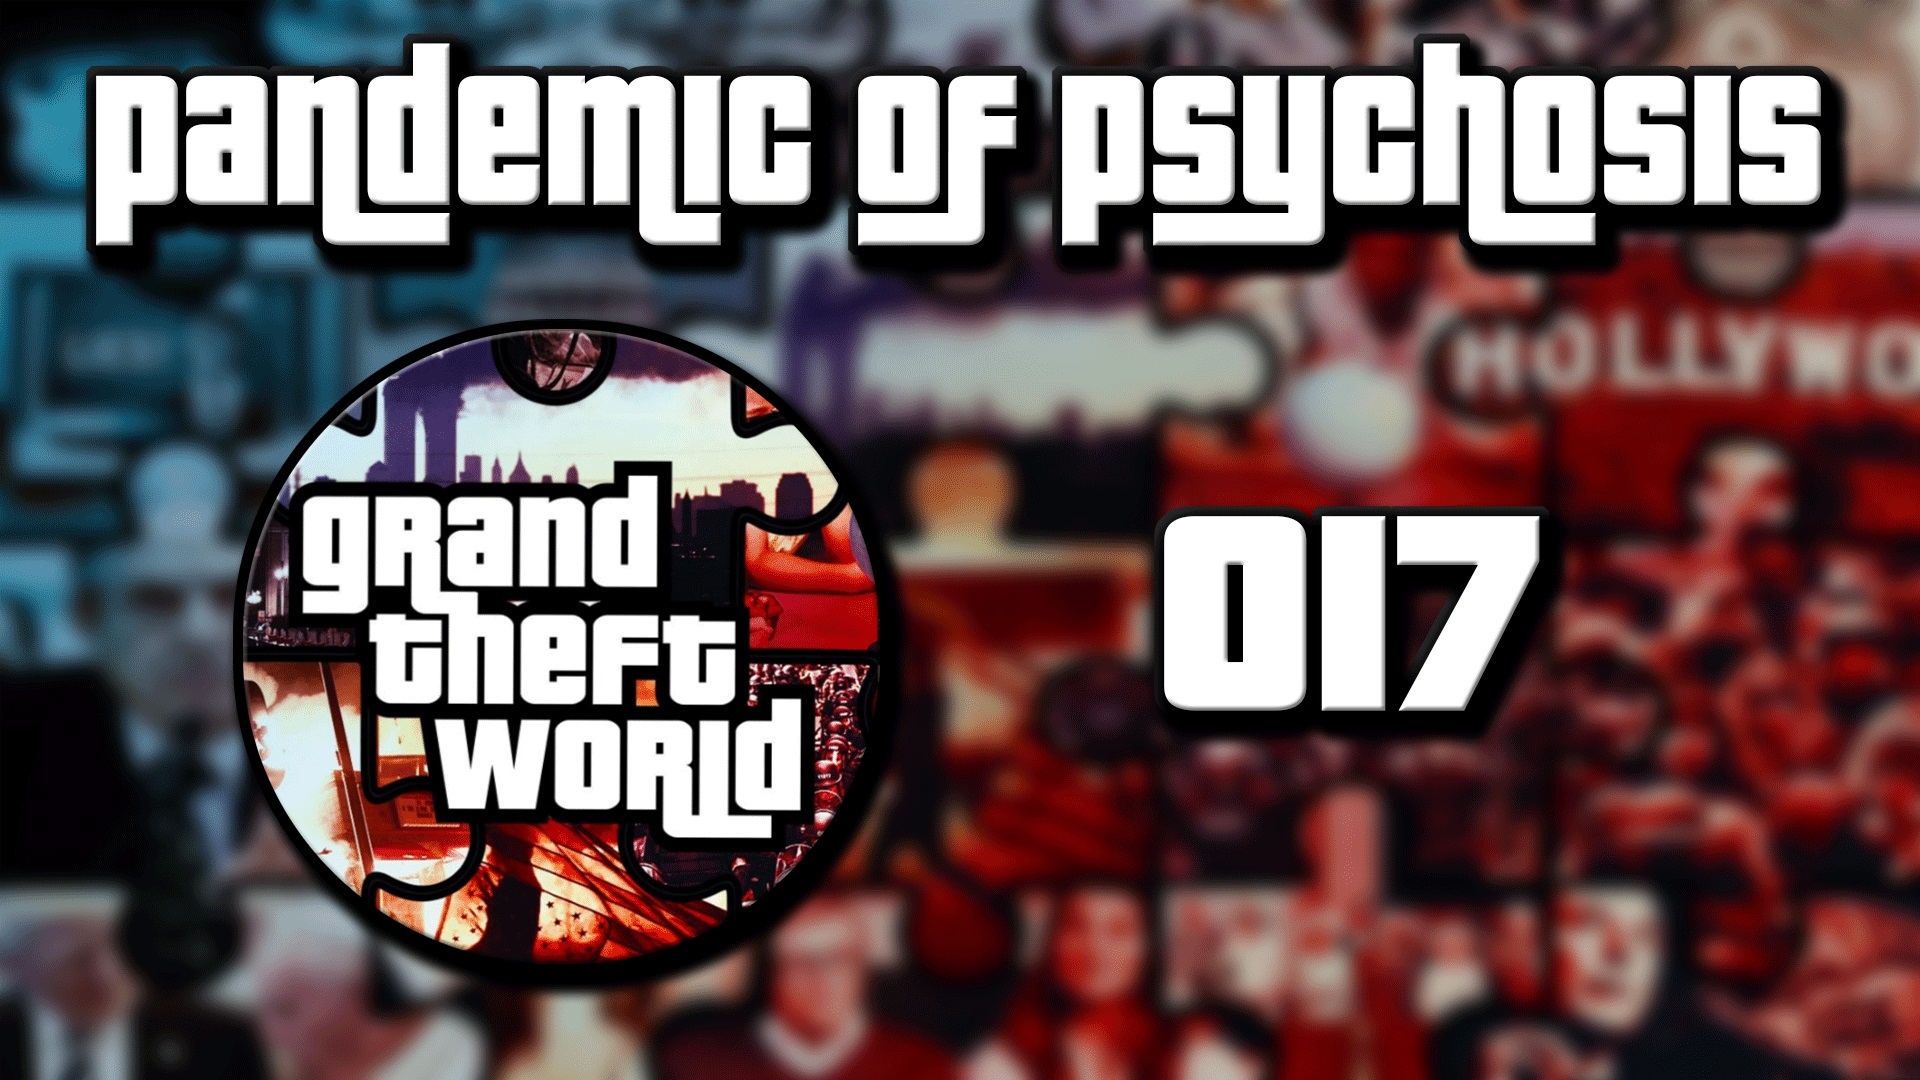 Grand Theft World Podcast 017 | Pandemic of Psychosis